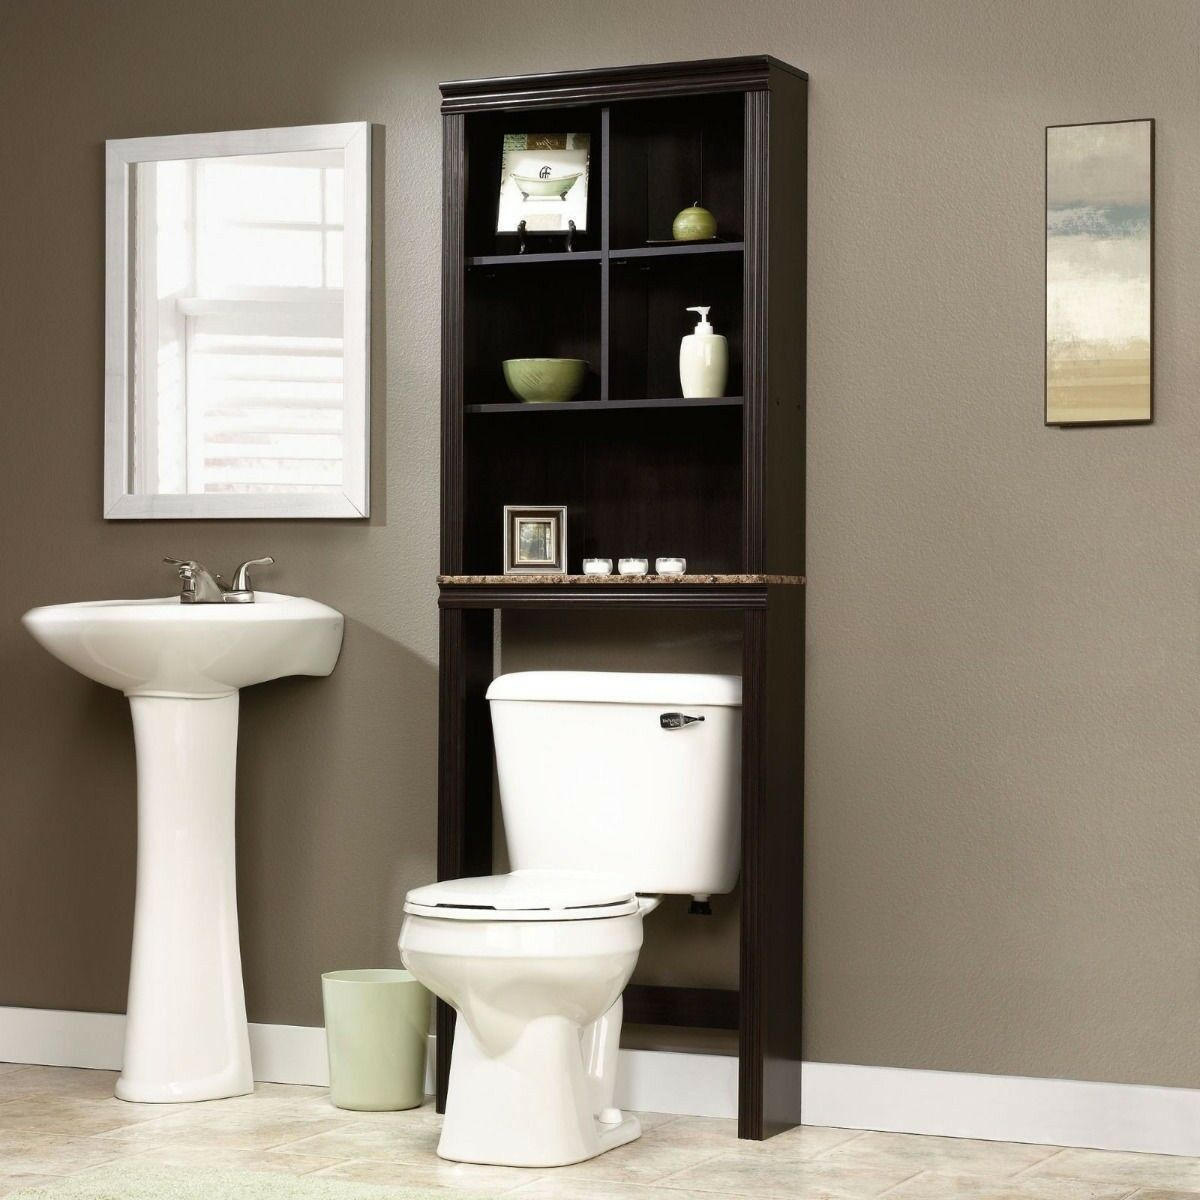 Bathroom Cabinet Over Toilet Shelf Space Saver Storage Adjustable Shelves Towels  eBay